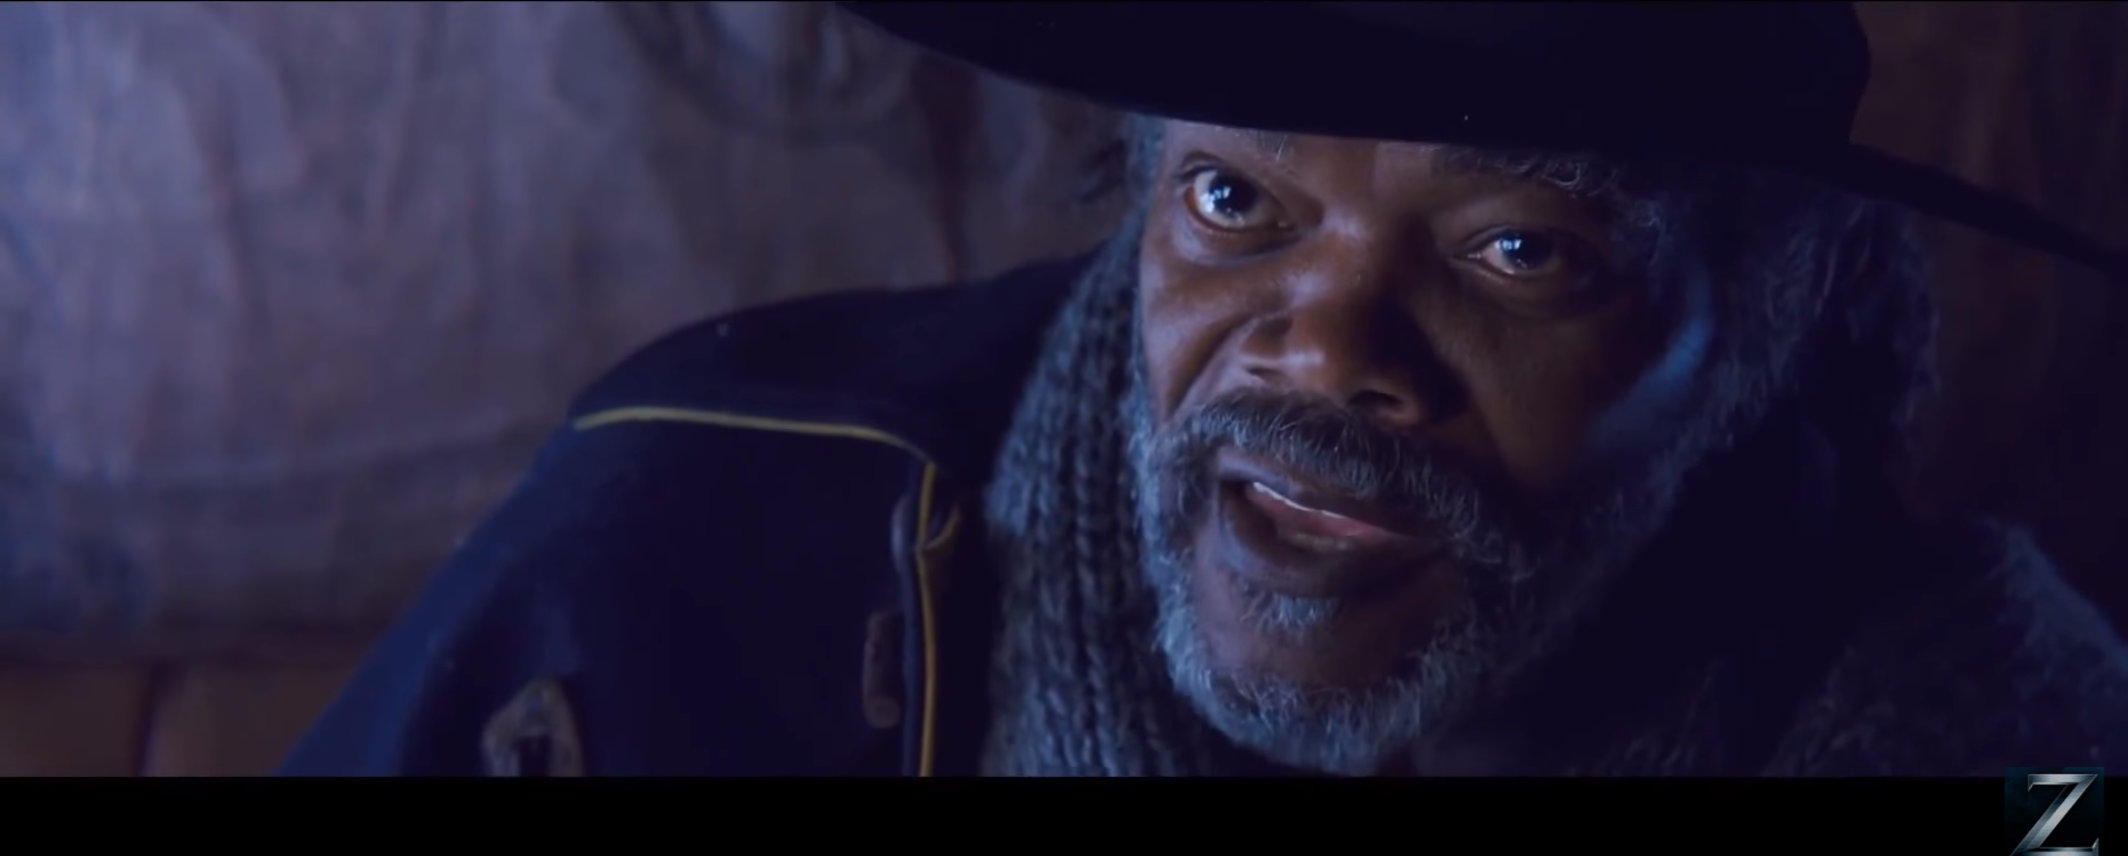 The Trailer For Tarantinos 'The Hateful Eight' Has Arrived!